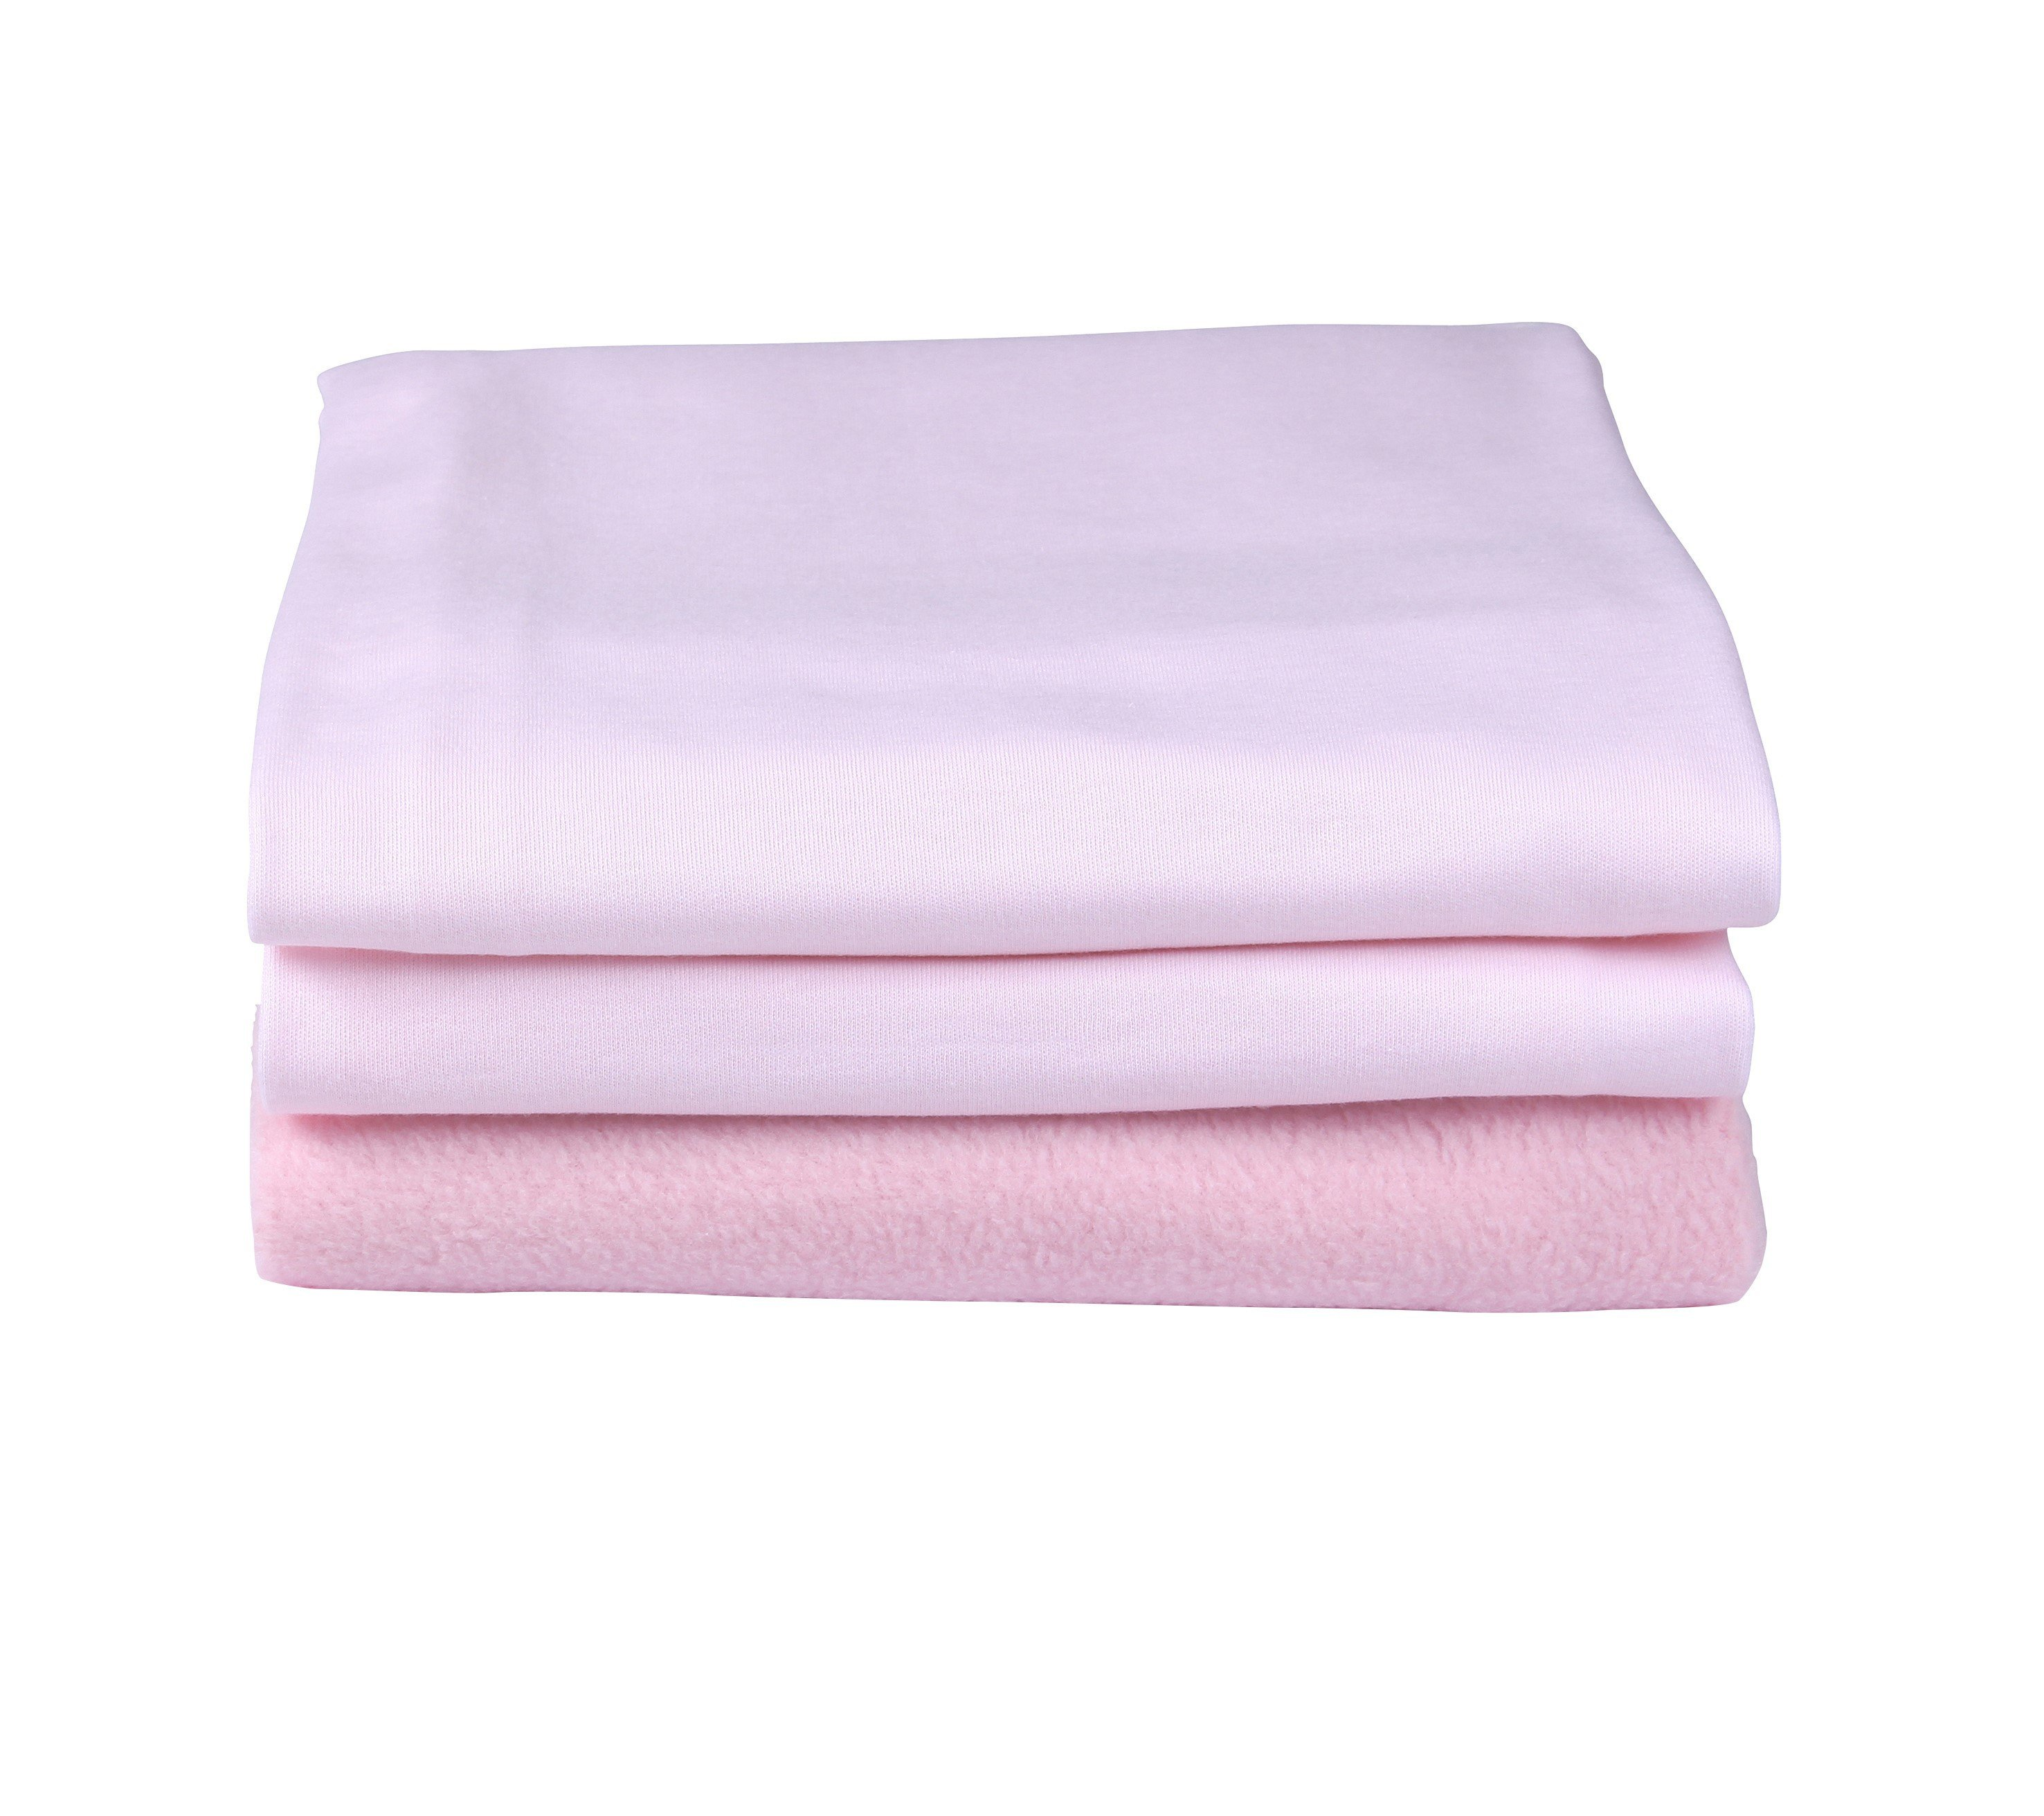 clair de lune cot and cot bed bedding bale  pink.